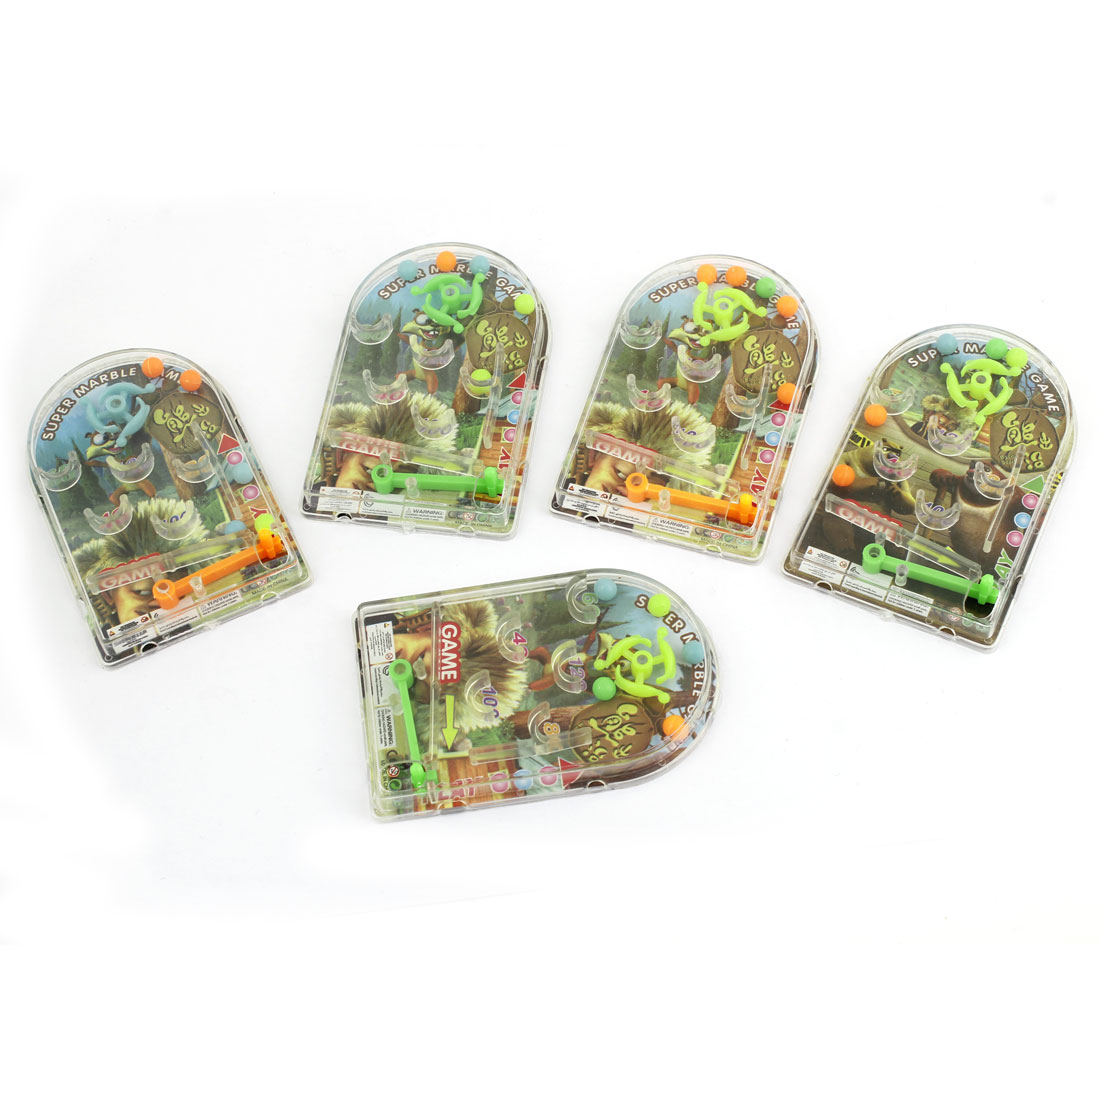 5 Pcs Plastic Pinball Marble Game Intelligent Toy Gift for Kids